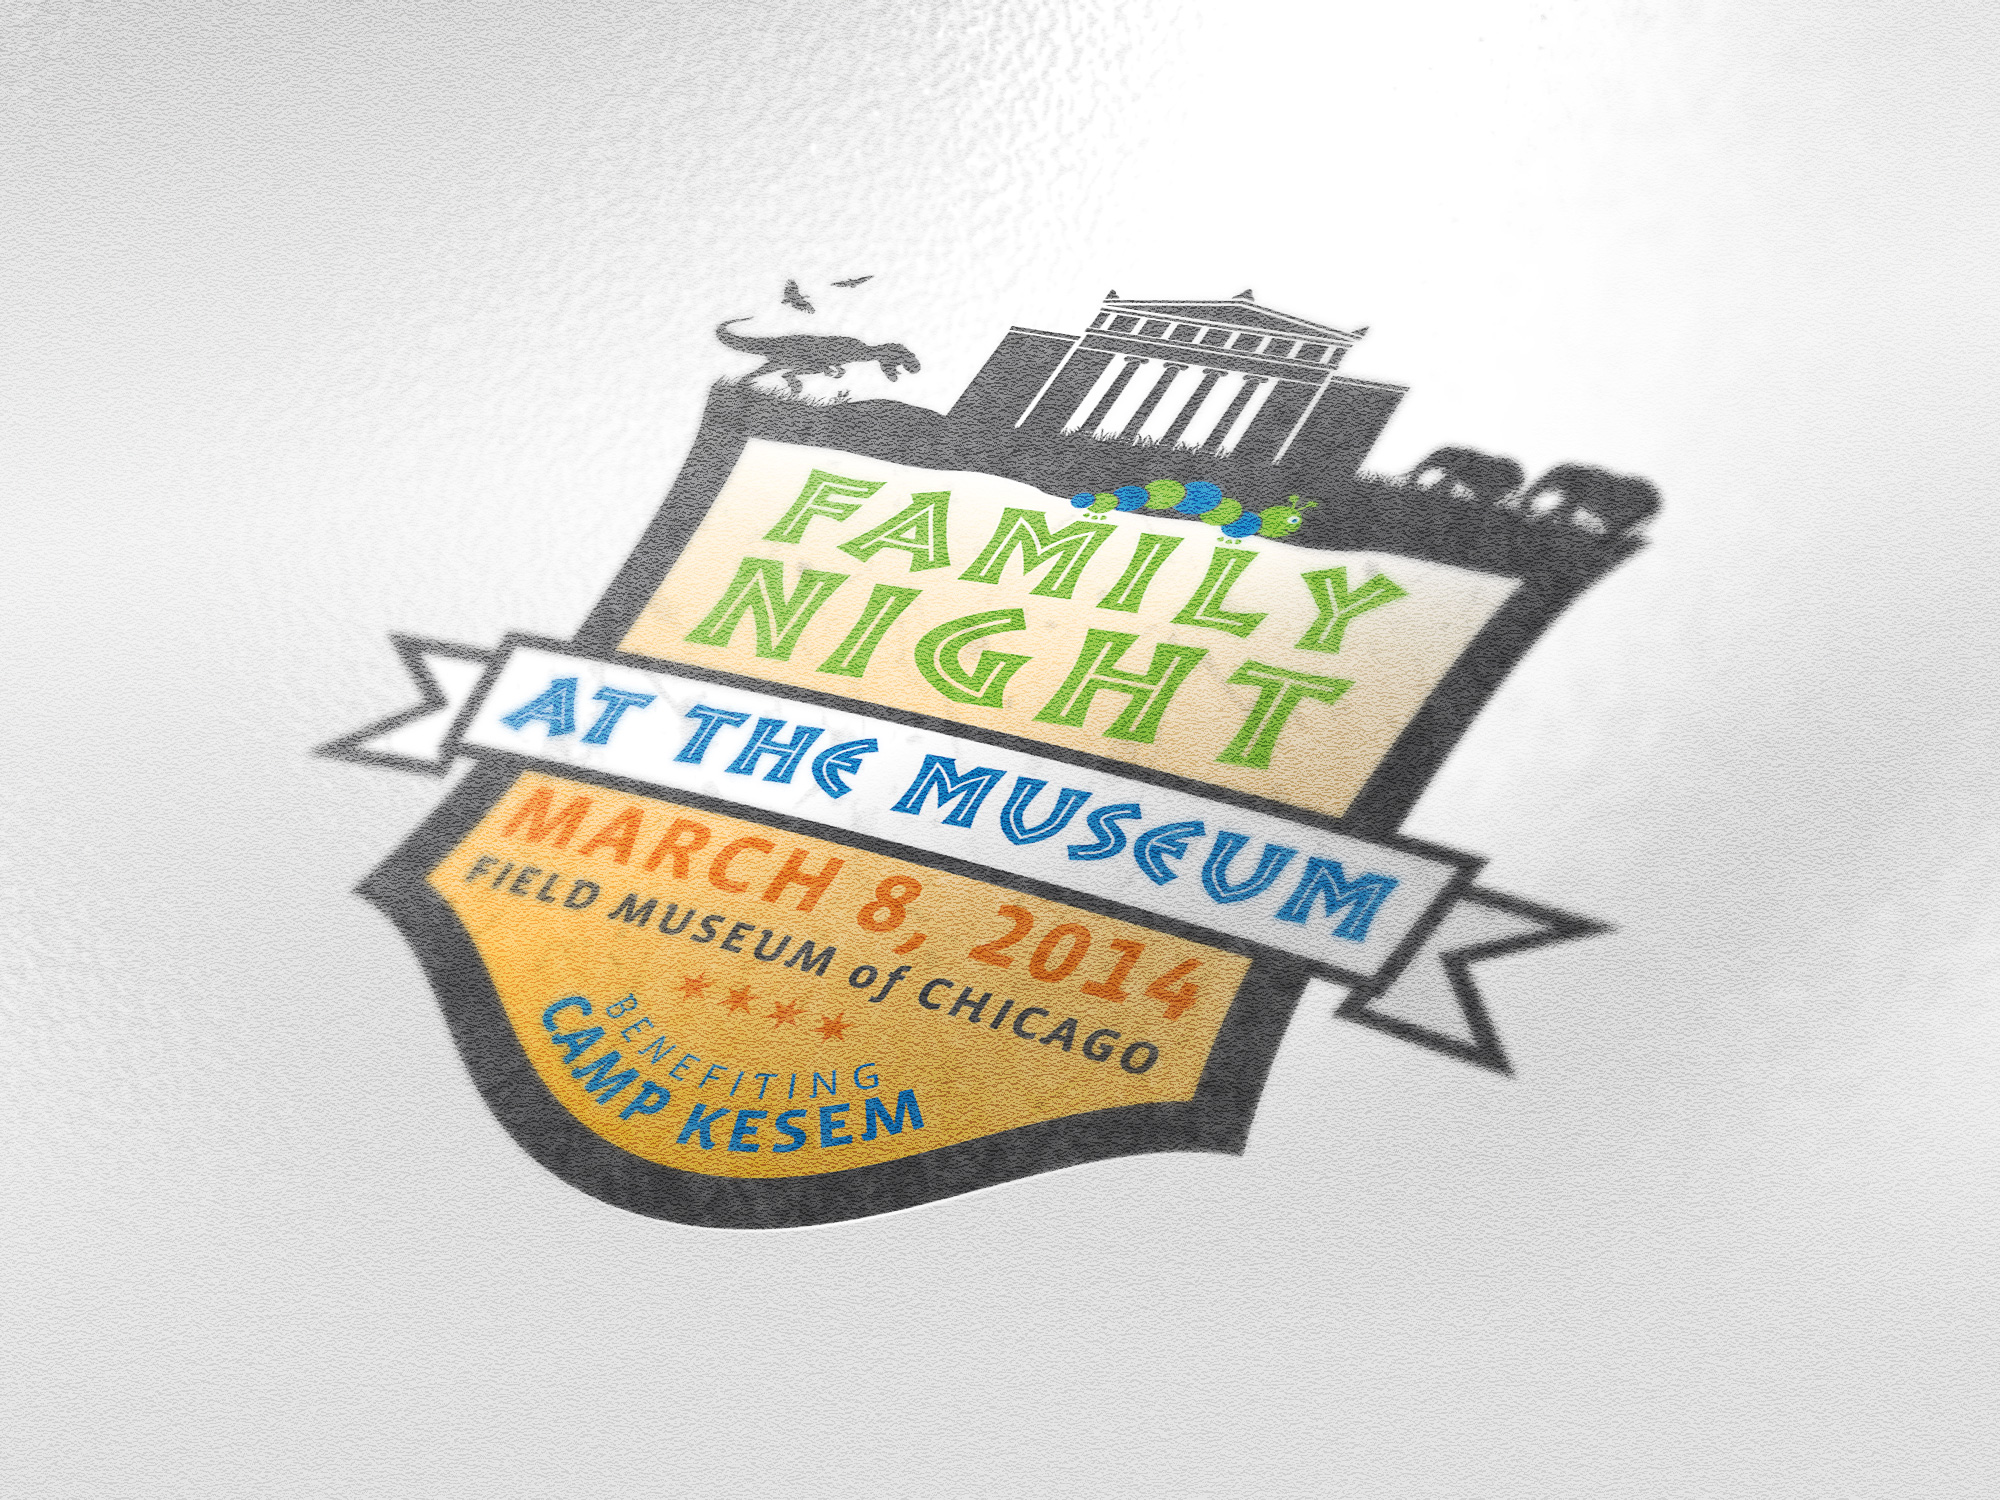 Family Night at the Museum